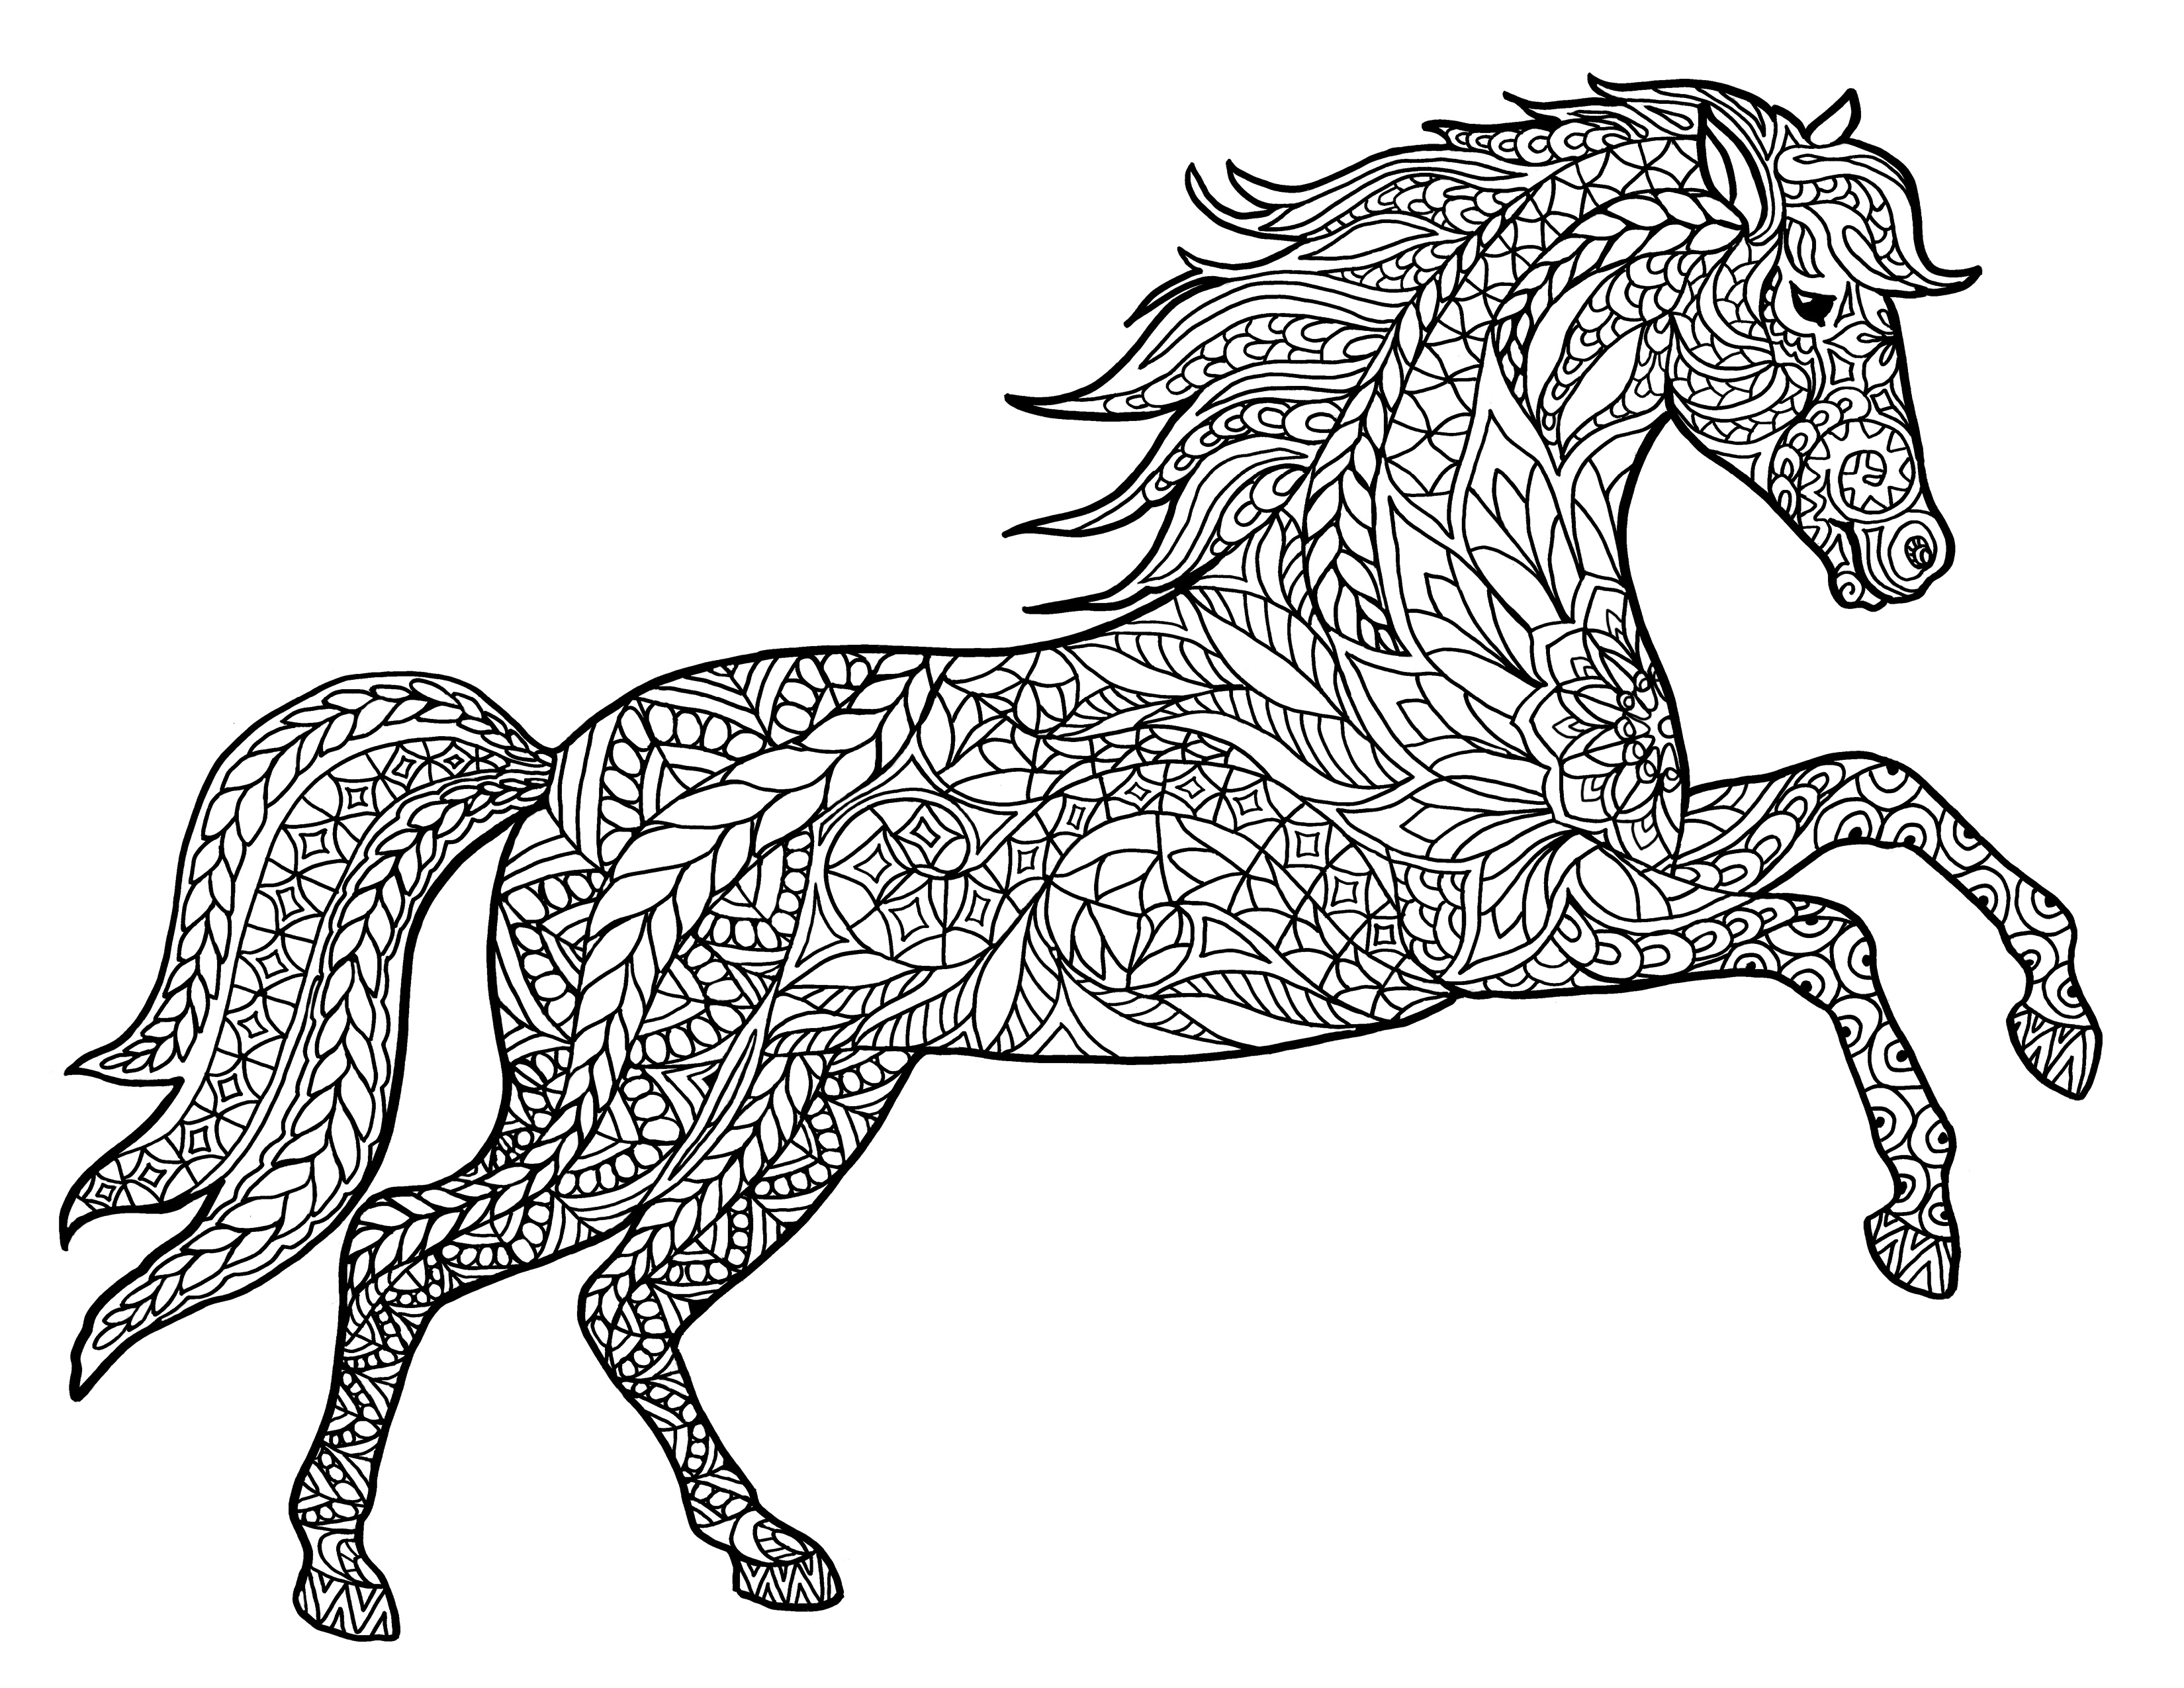 colouring sheets animals fox coloring pages fox coloring page adult coloring sheets colouring animals